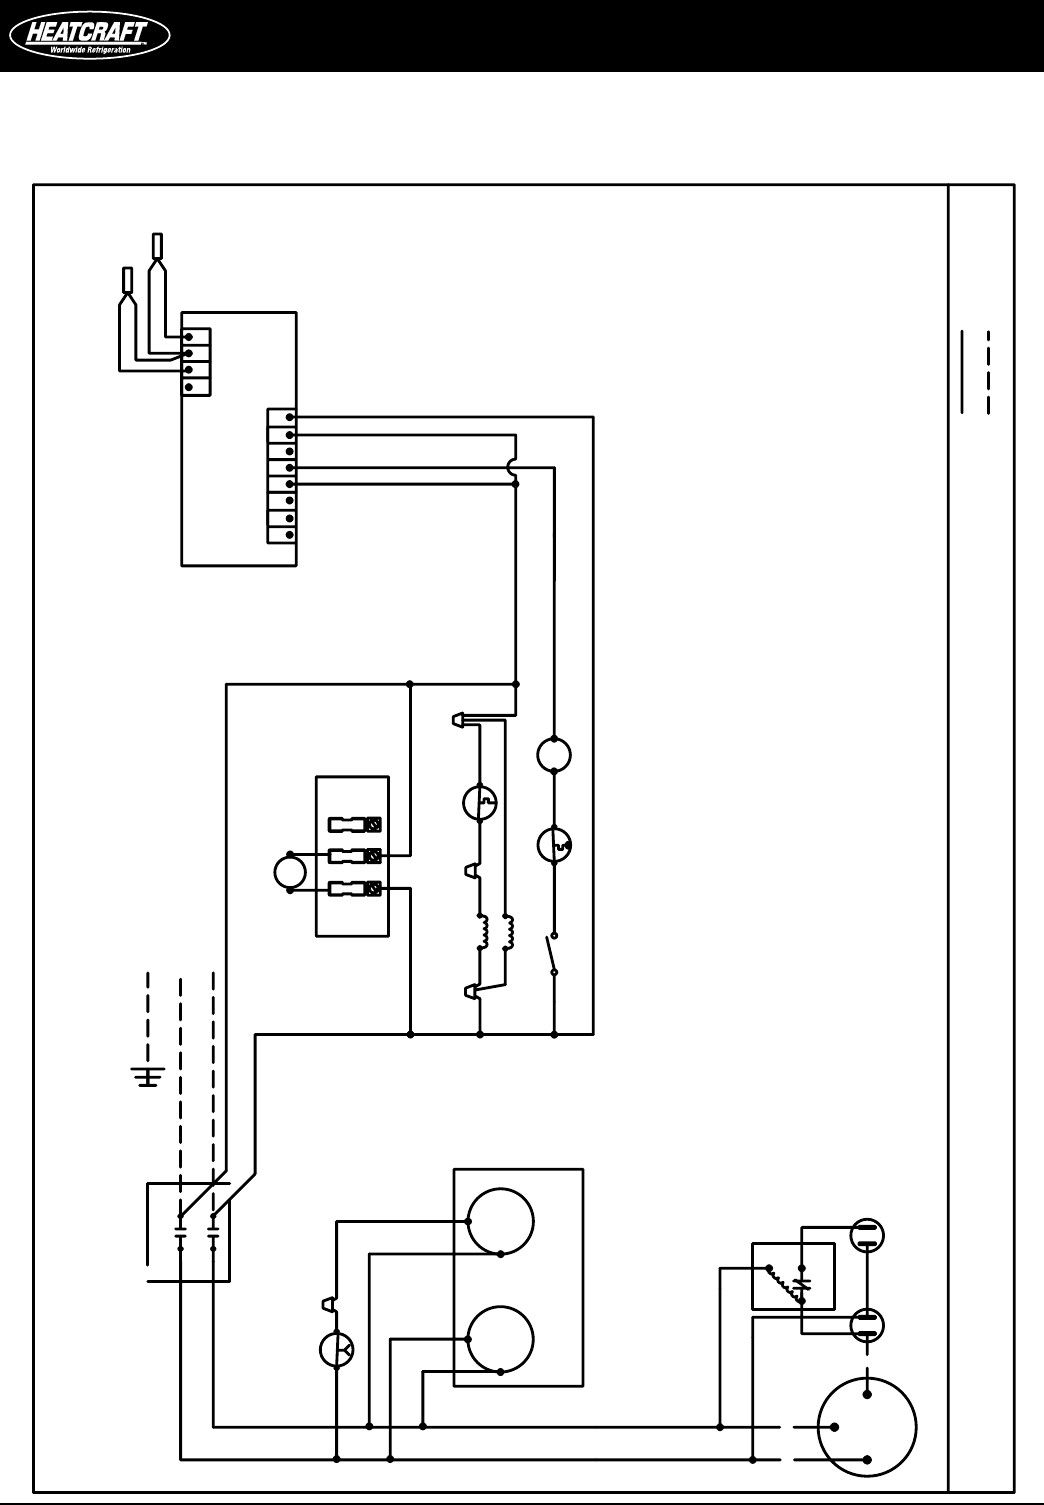 heatcraft walk in freezer wiring diagram sample